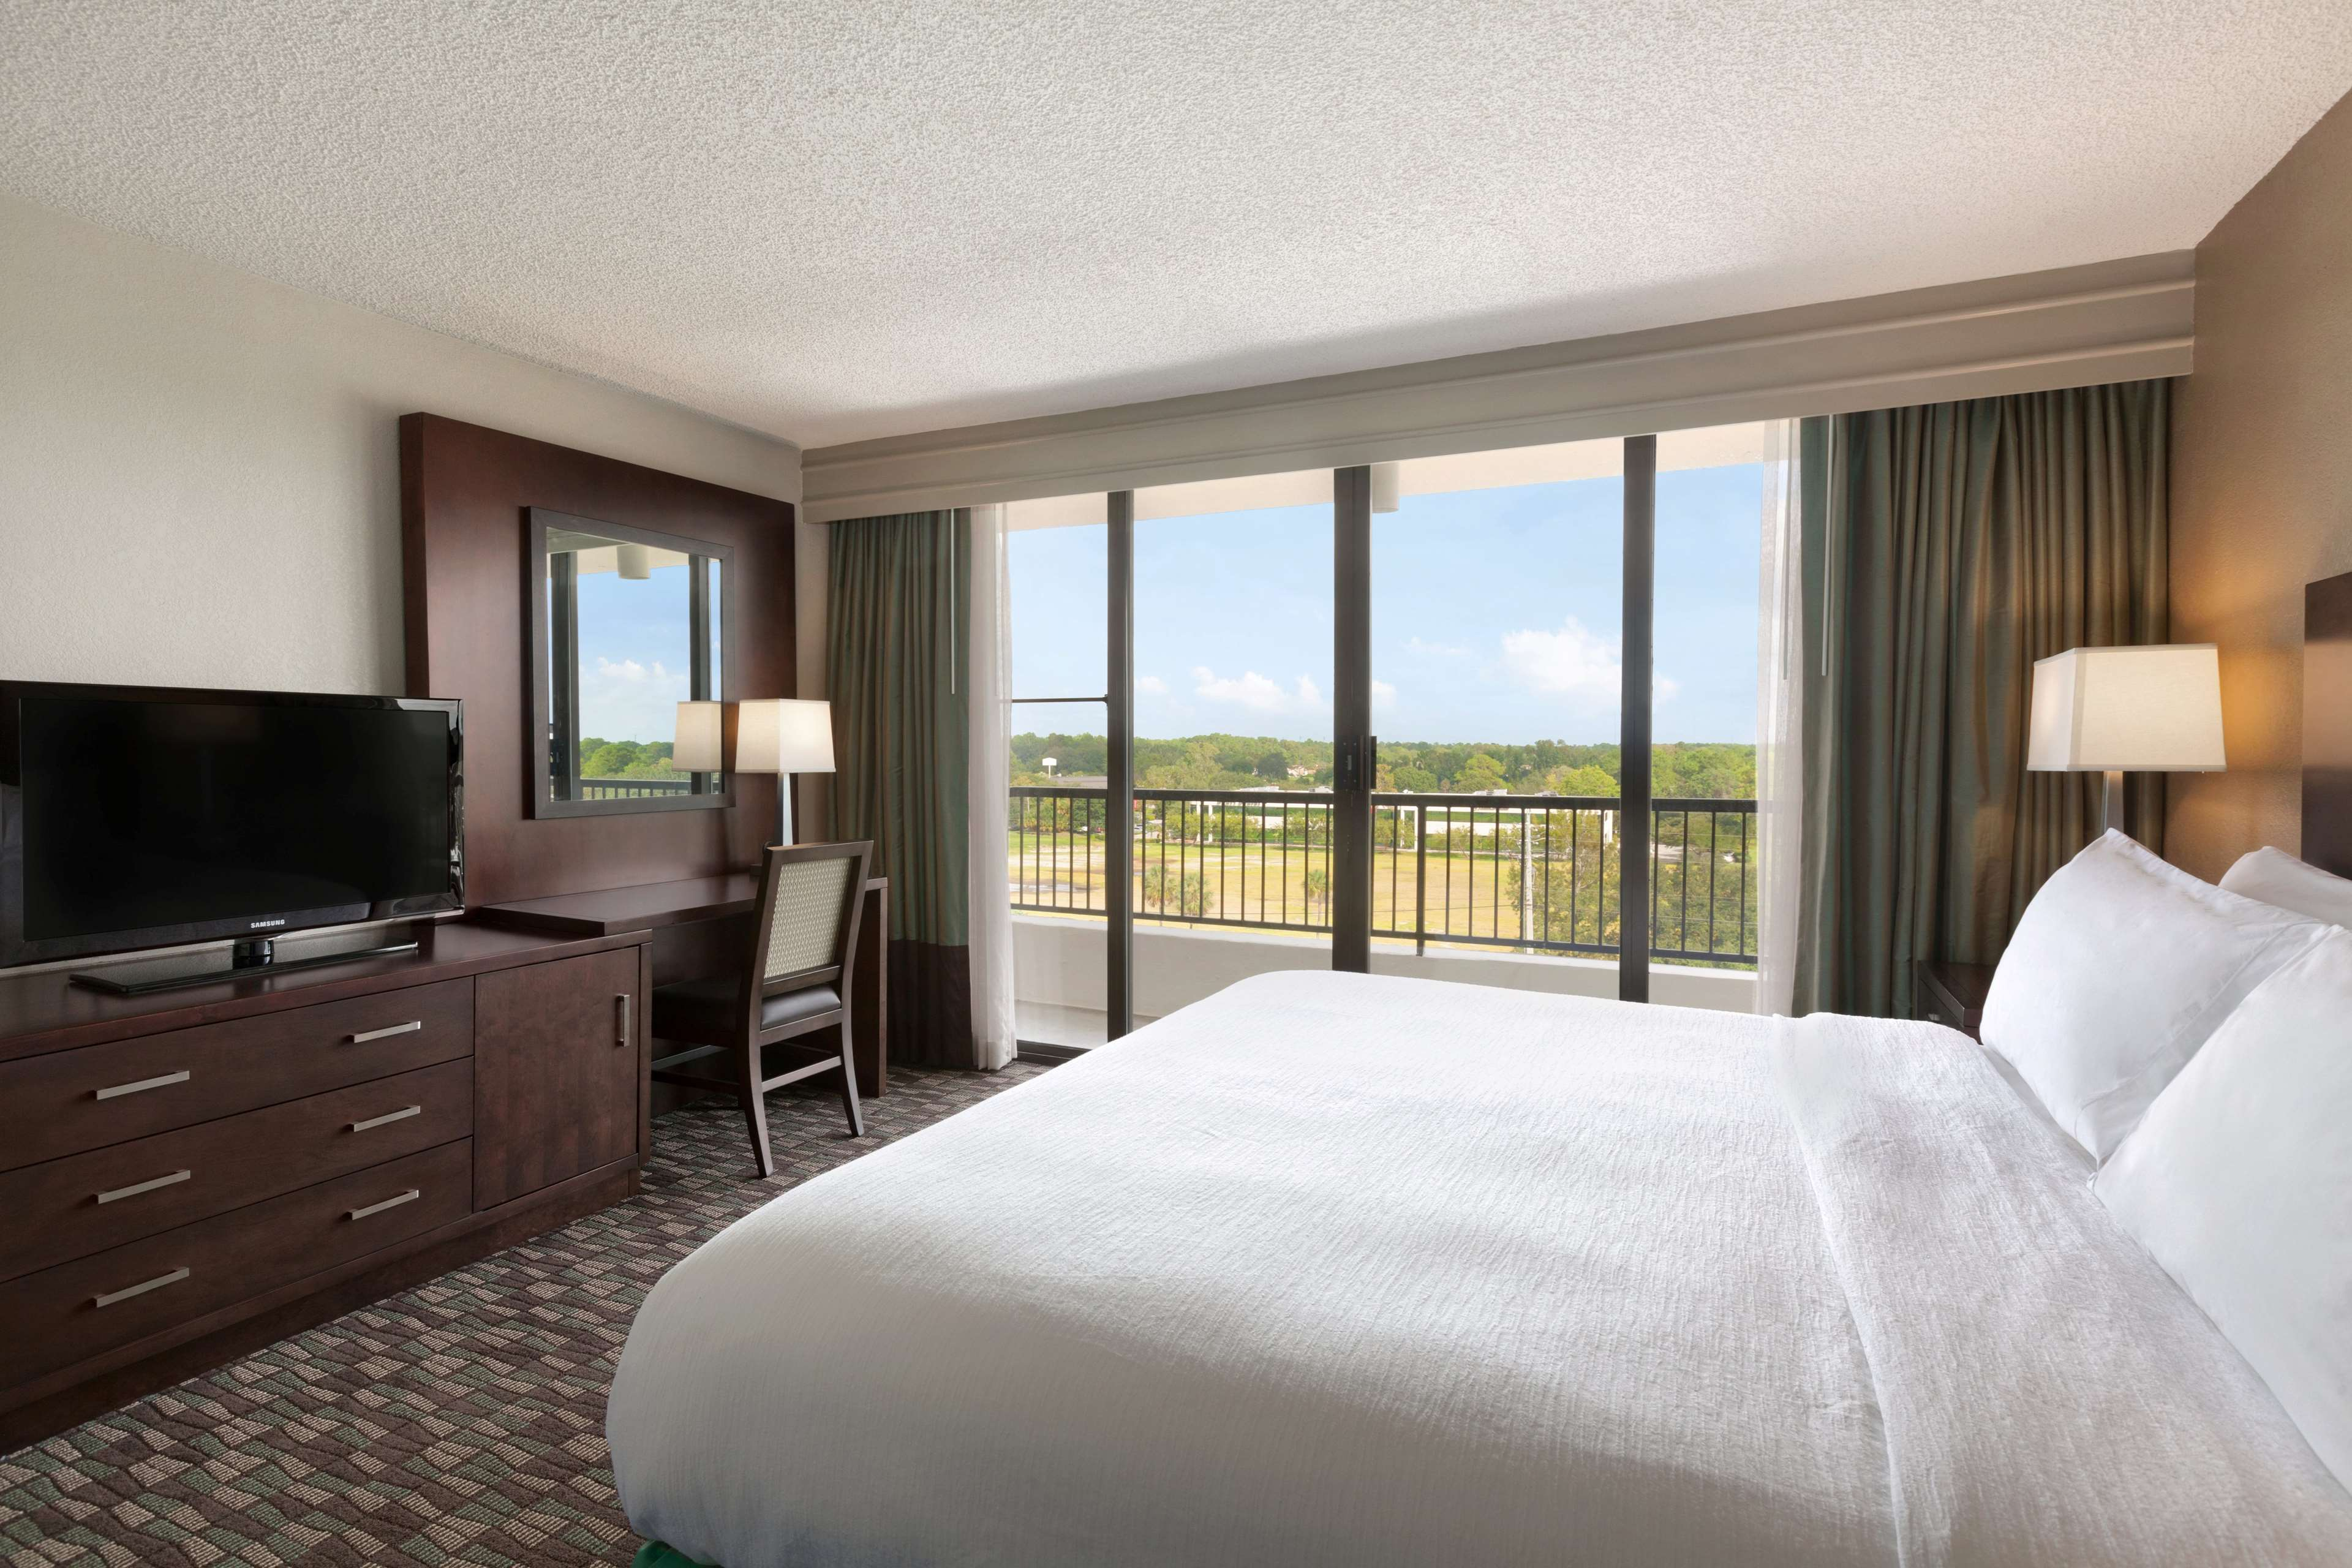 Embassy Suites by Hilton Jacksonville Baymeadows image 21